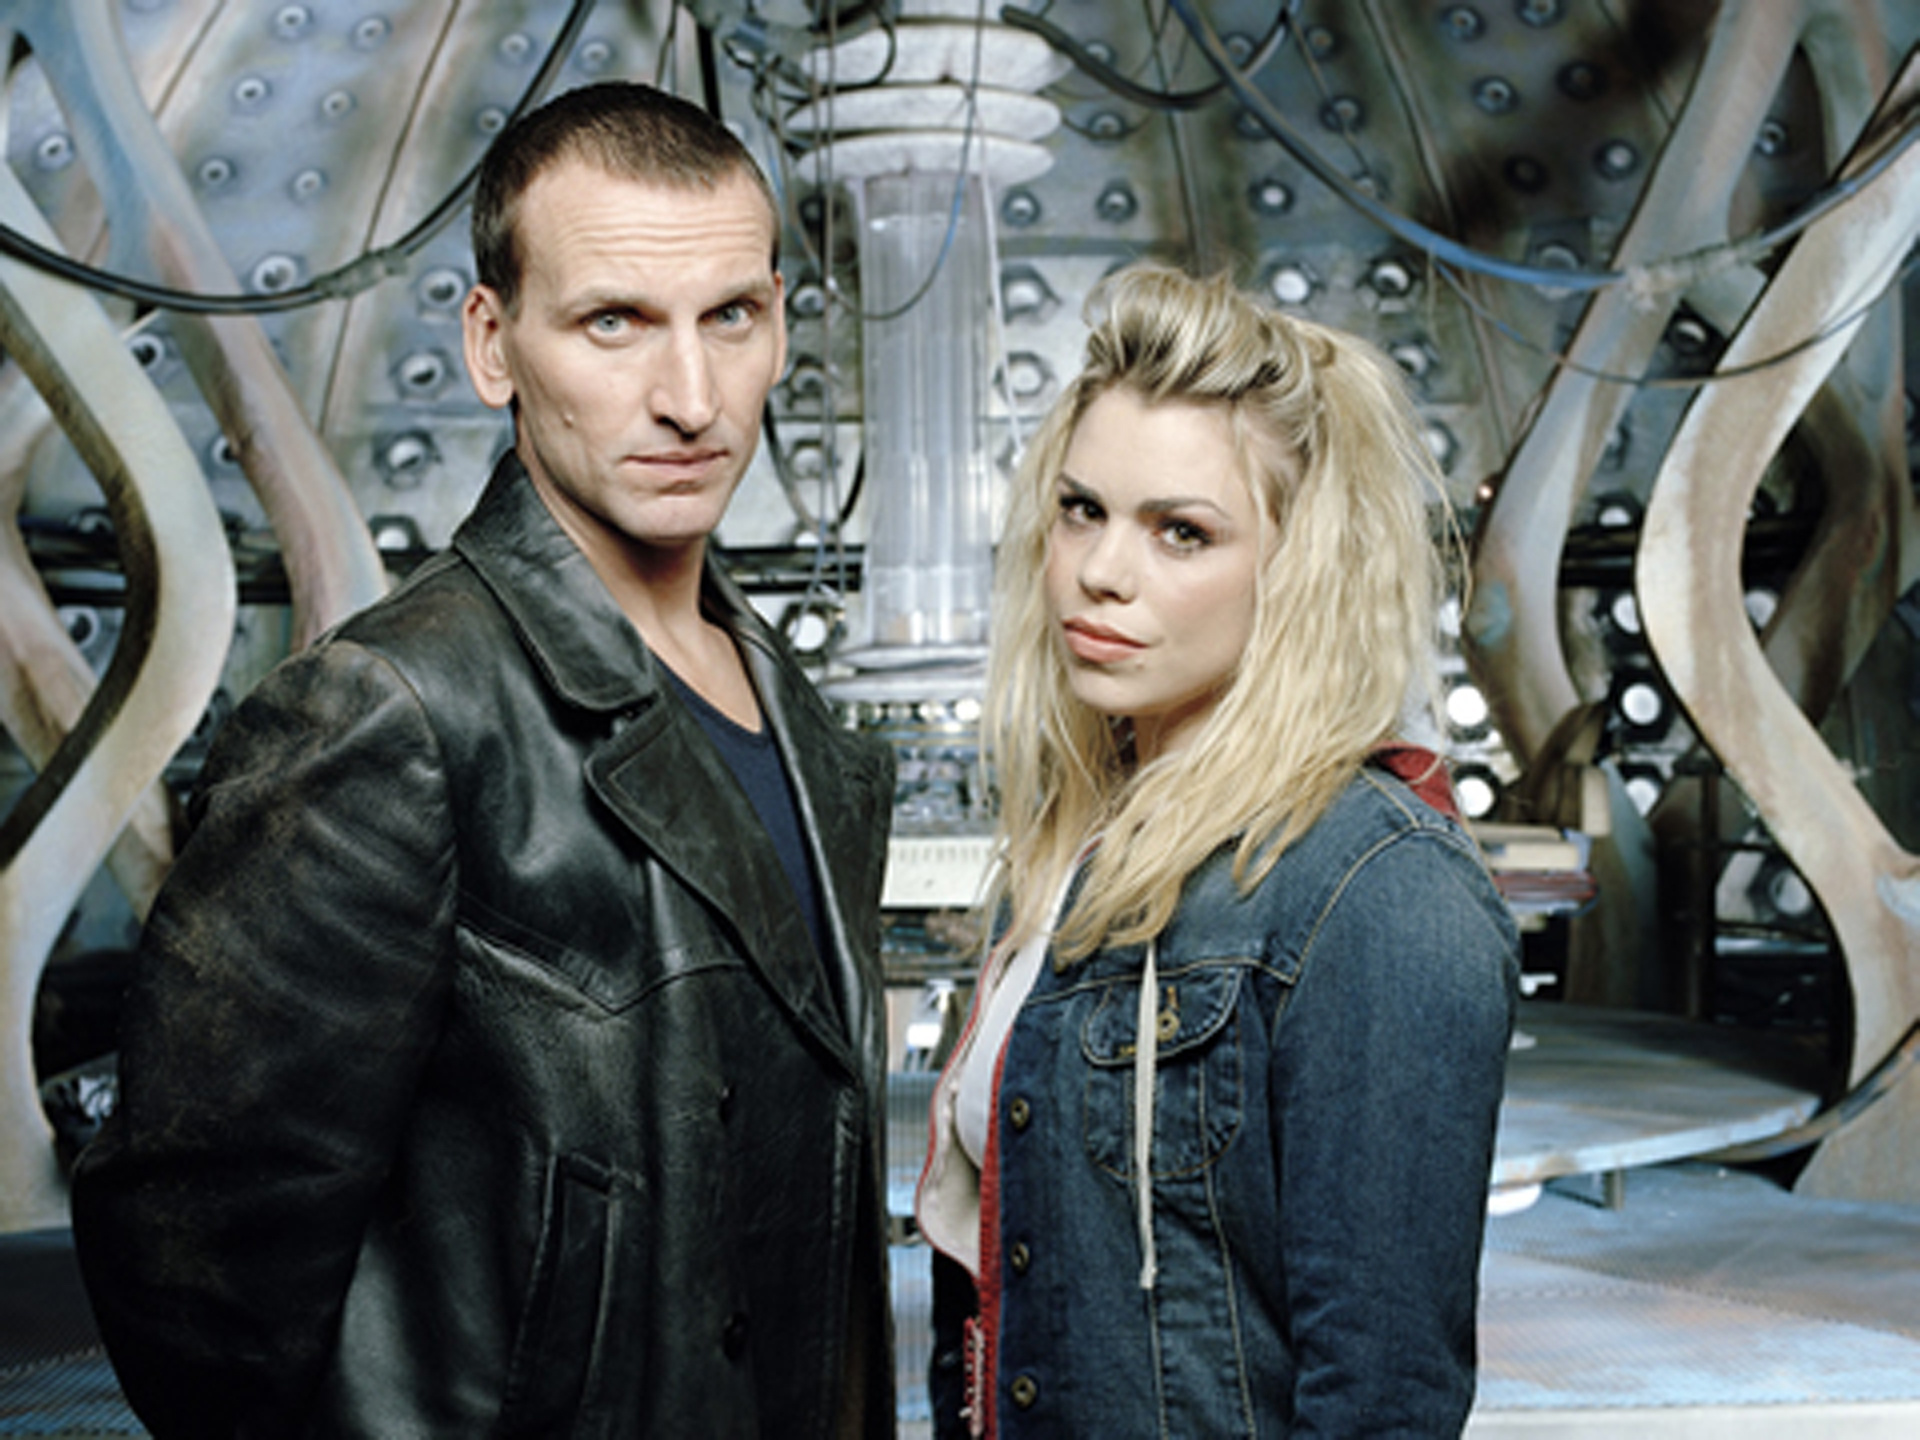 Image result for rose tyler doctor who